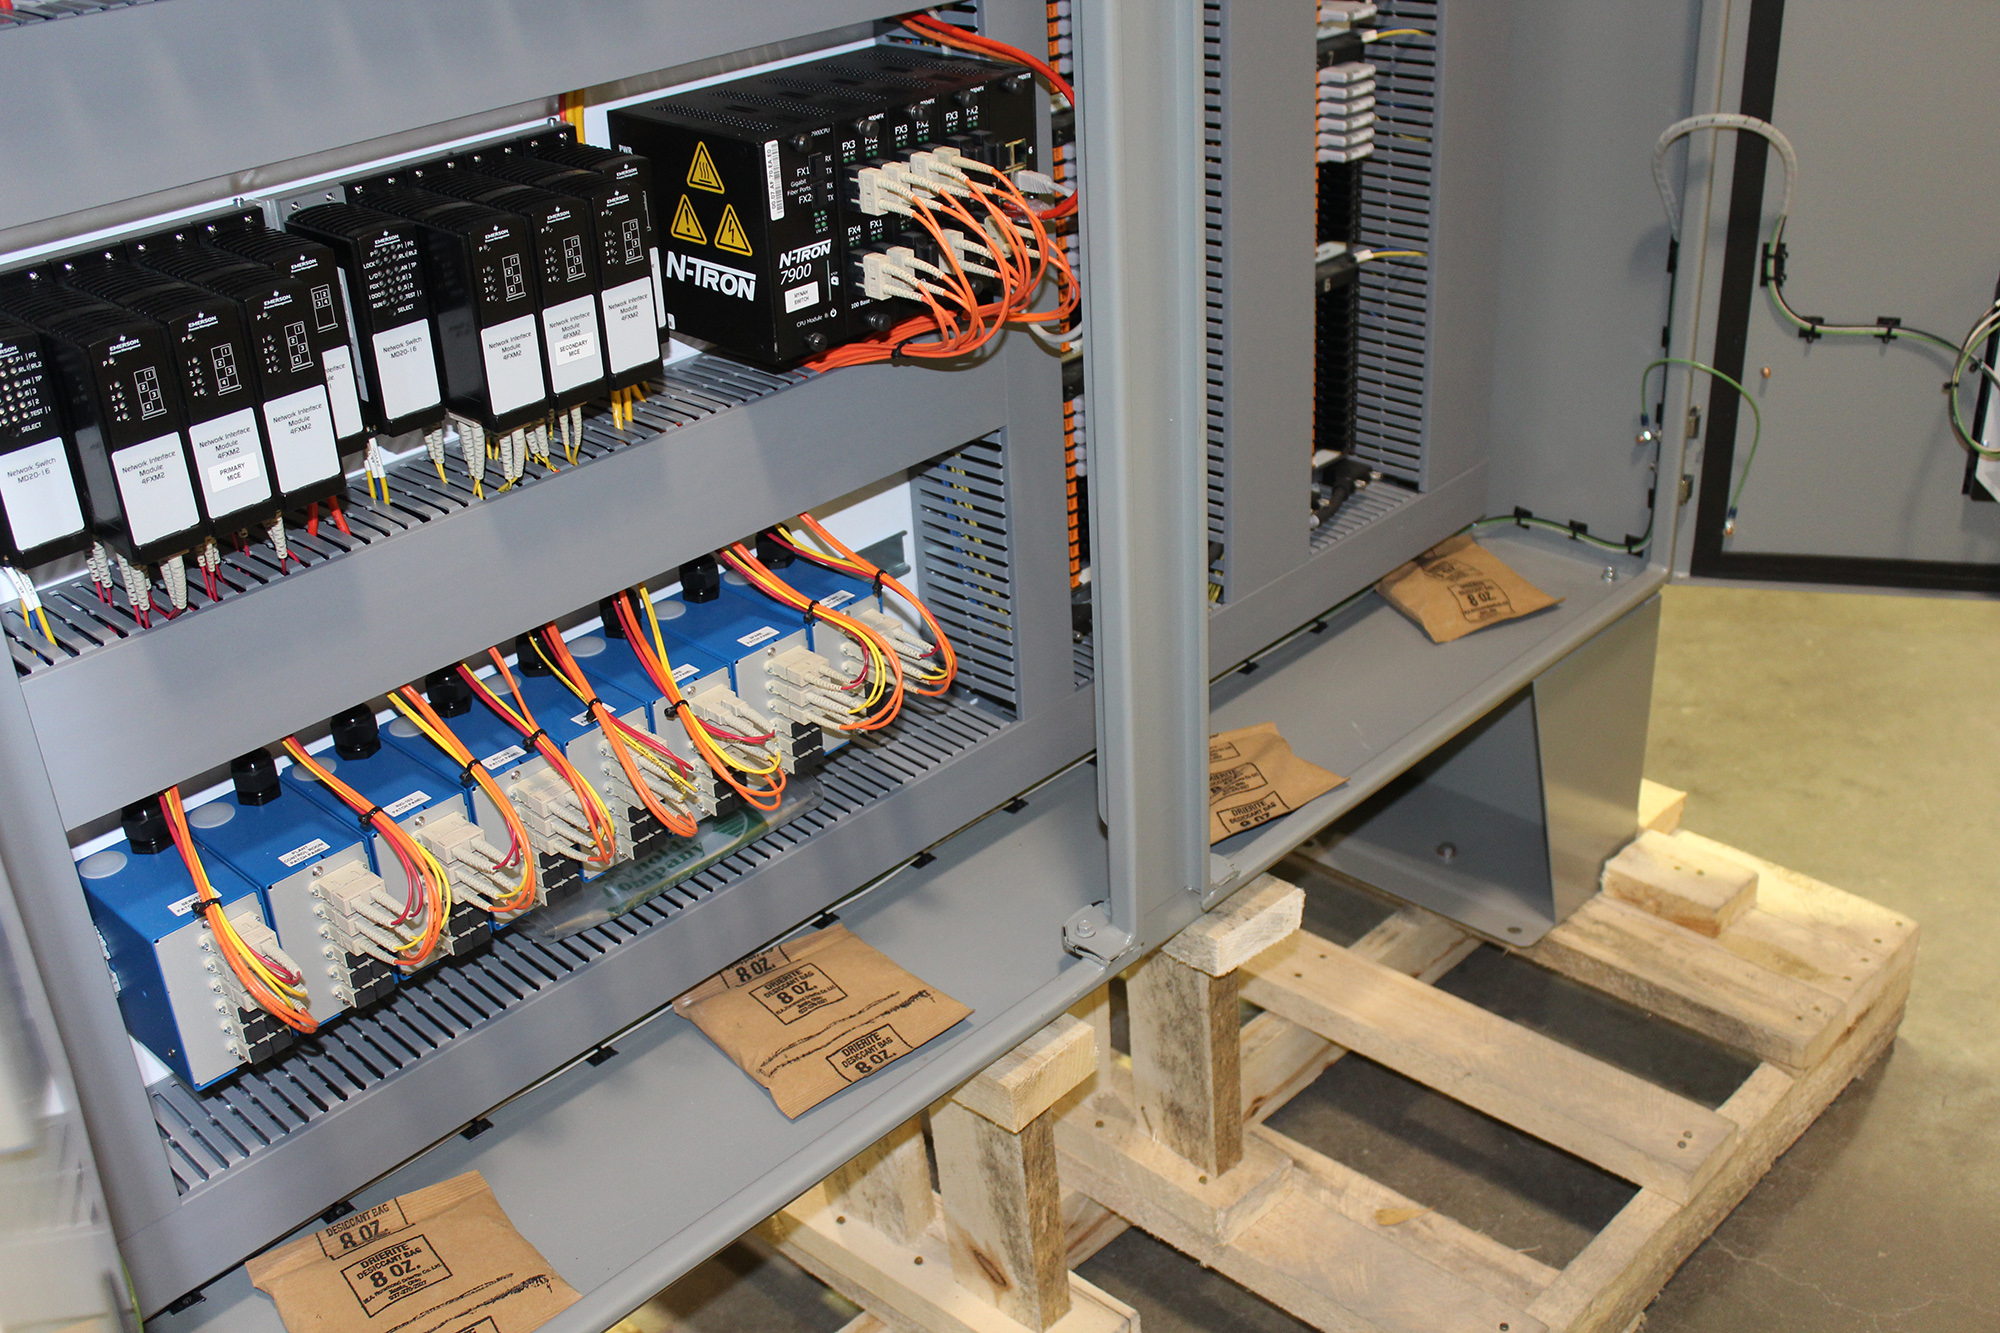 DELTAV DISTRIBUTED CONTROL SYSTEM (DCS) FOR A FRACTIONATOR FACILITY